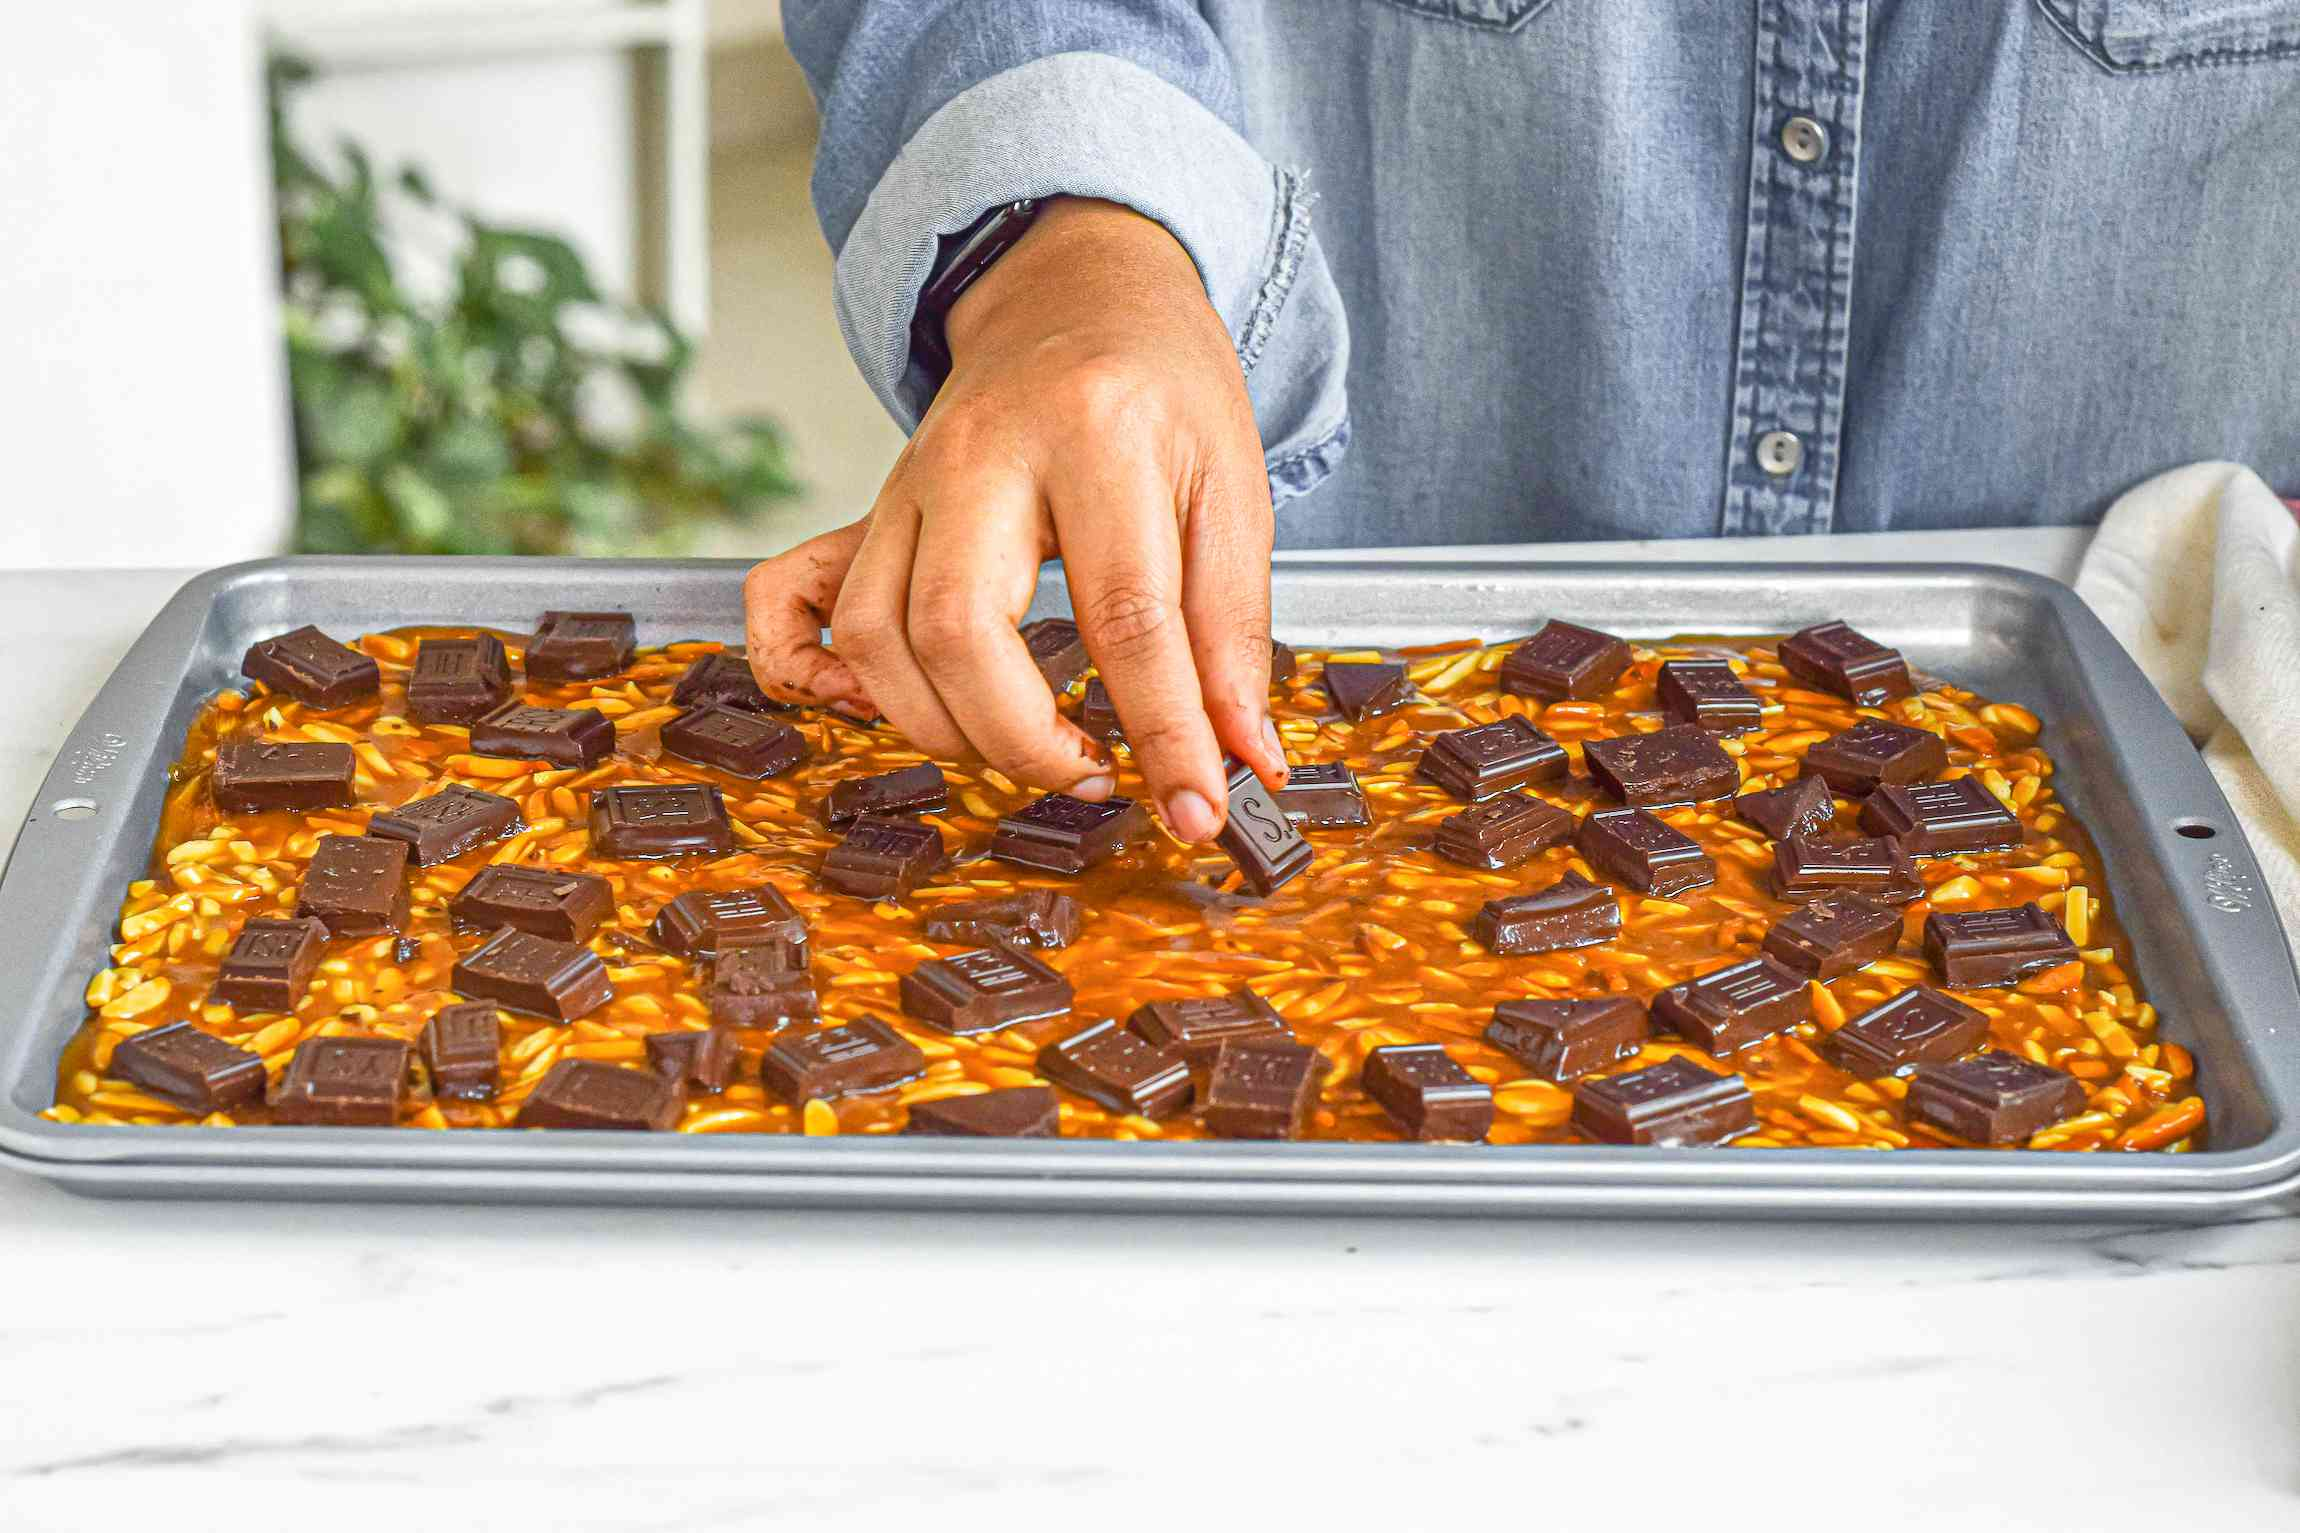 Adding chocolate to the top of the almond roca candy.